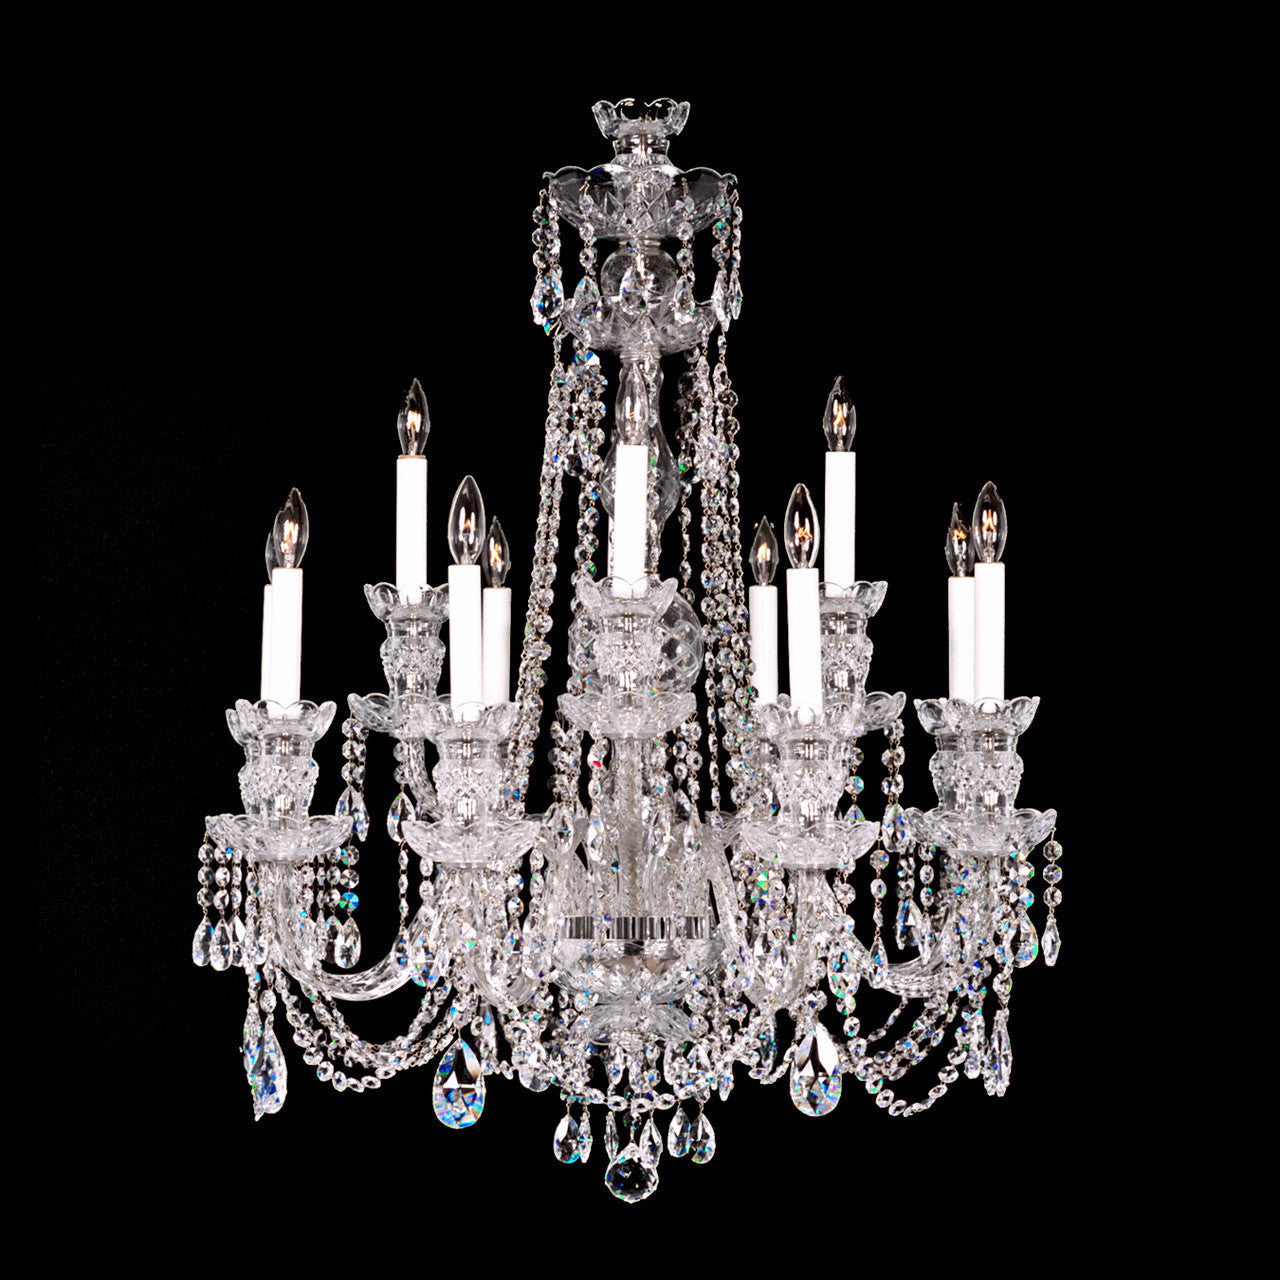 Crystal chandeliers and wall sconces direct free shipping 12 light crystal chandelier 84 medium with swarovski arubaitofo Images